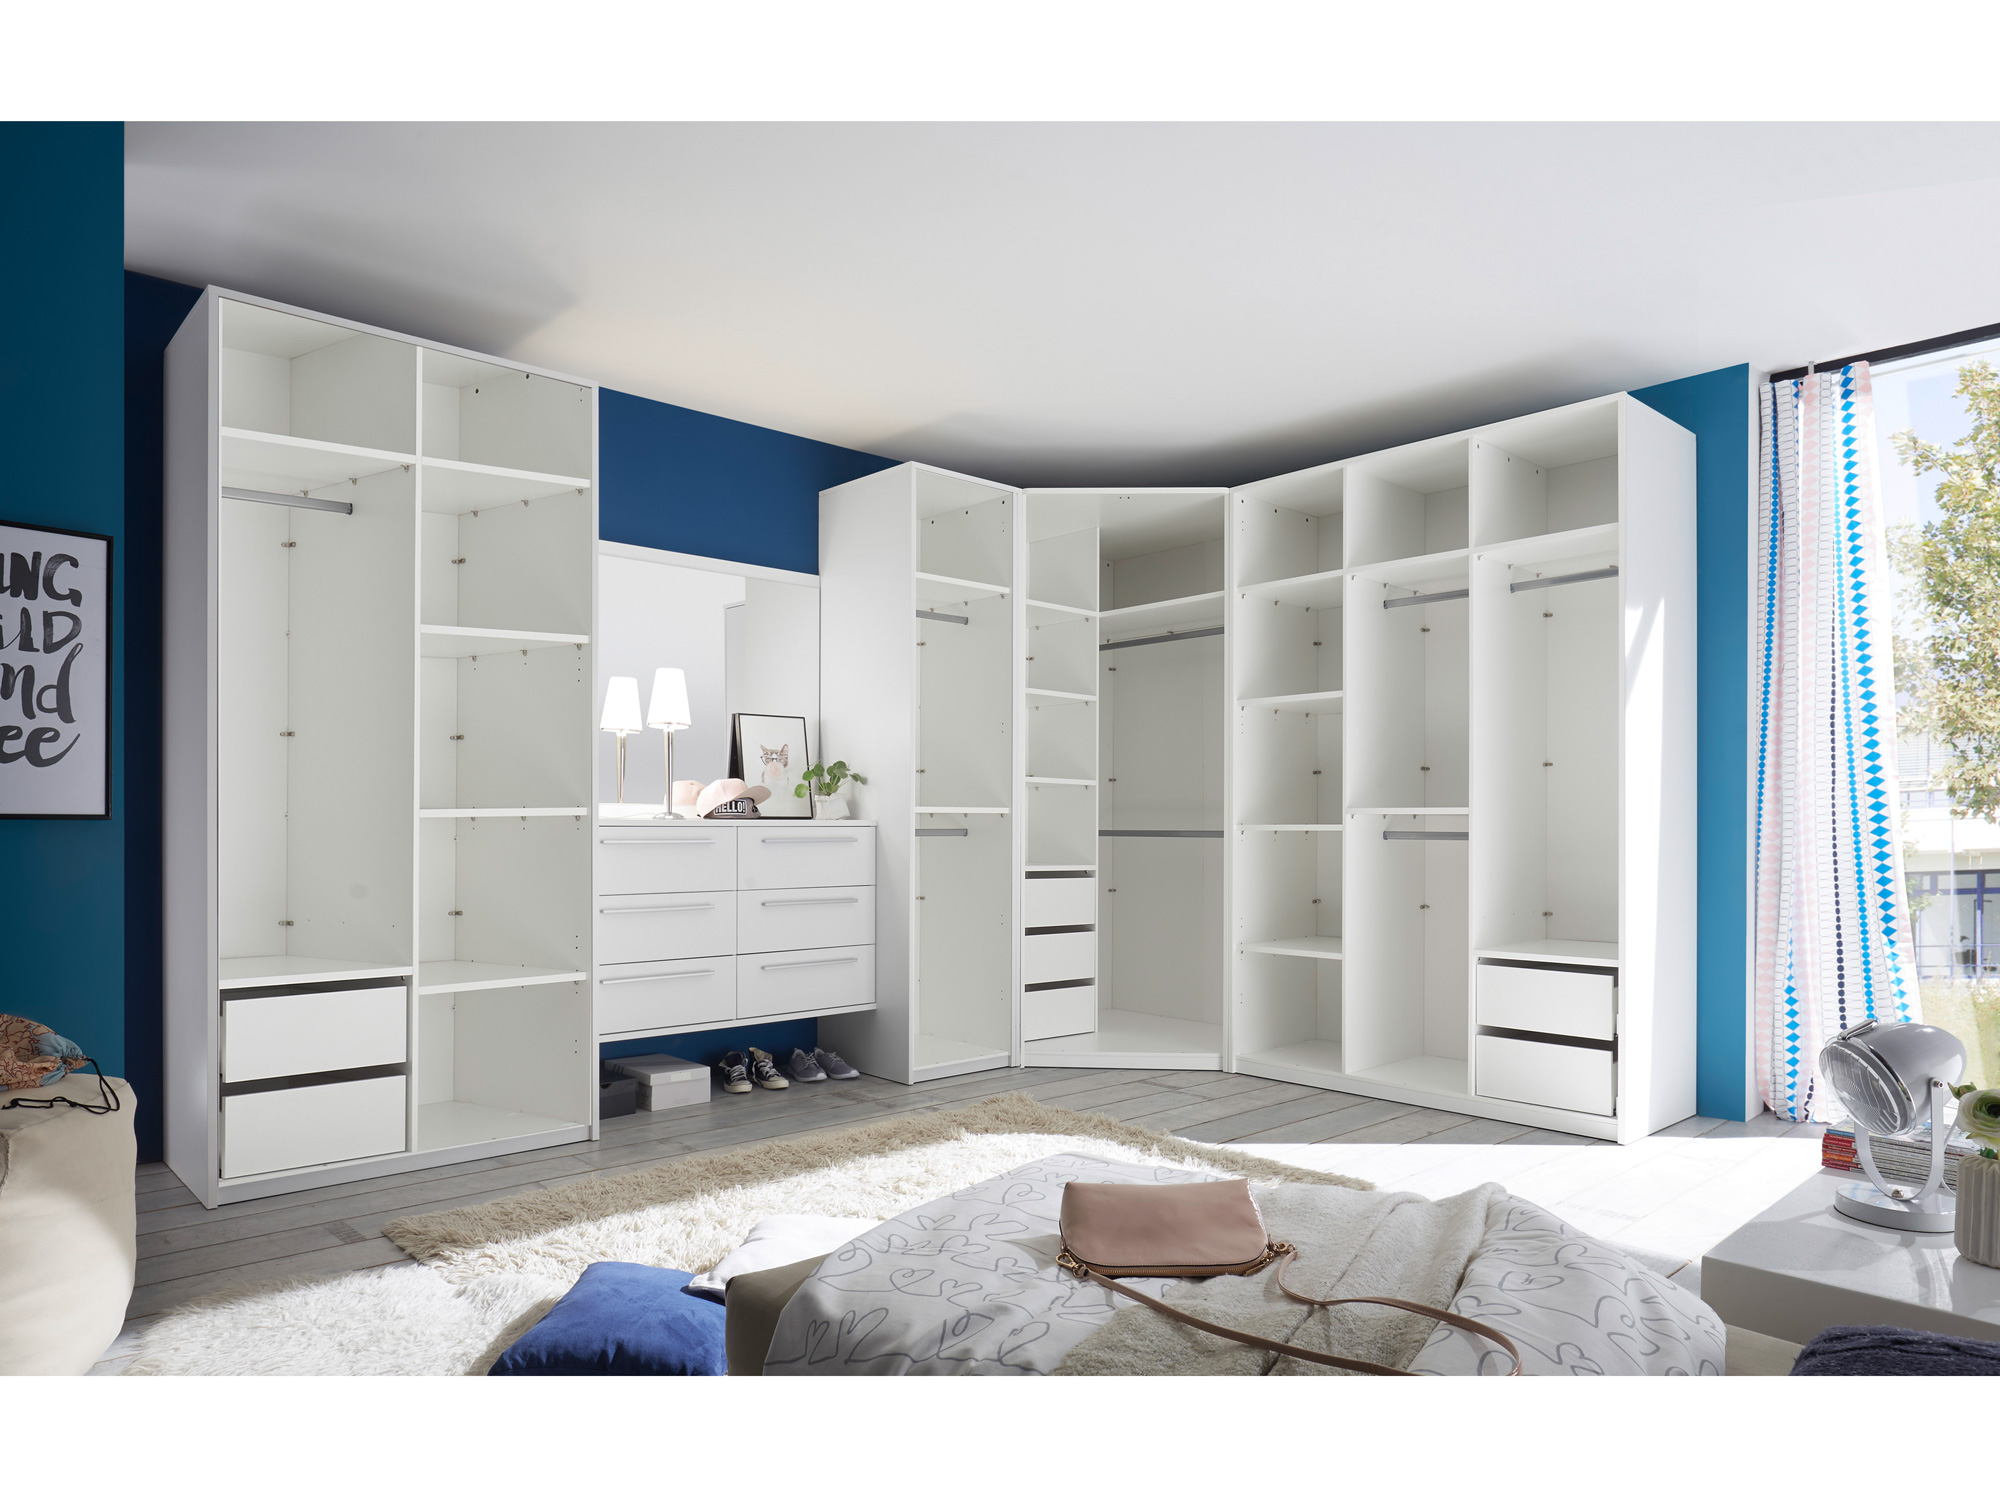 melbourne kleiderschrankkonzept wei ohne t ren. Black Bedroom Furniture Sets. Home Design Ideas